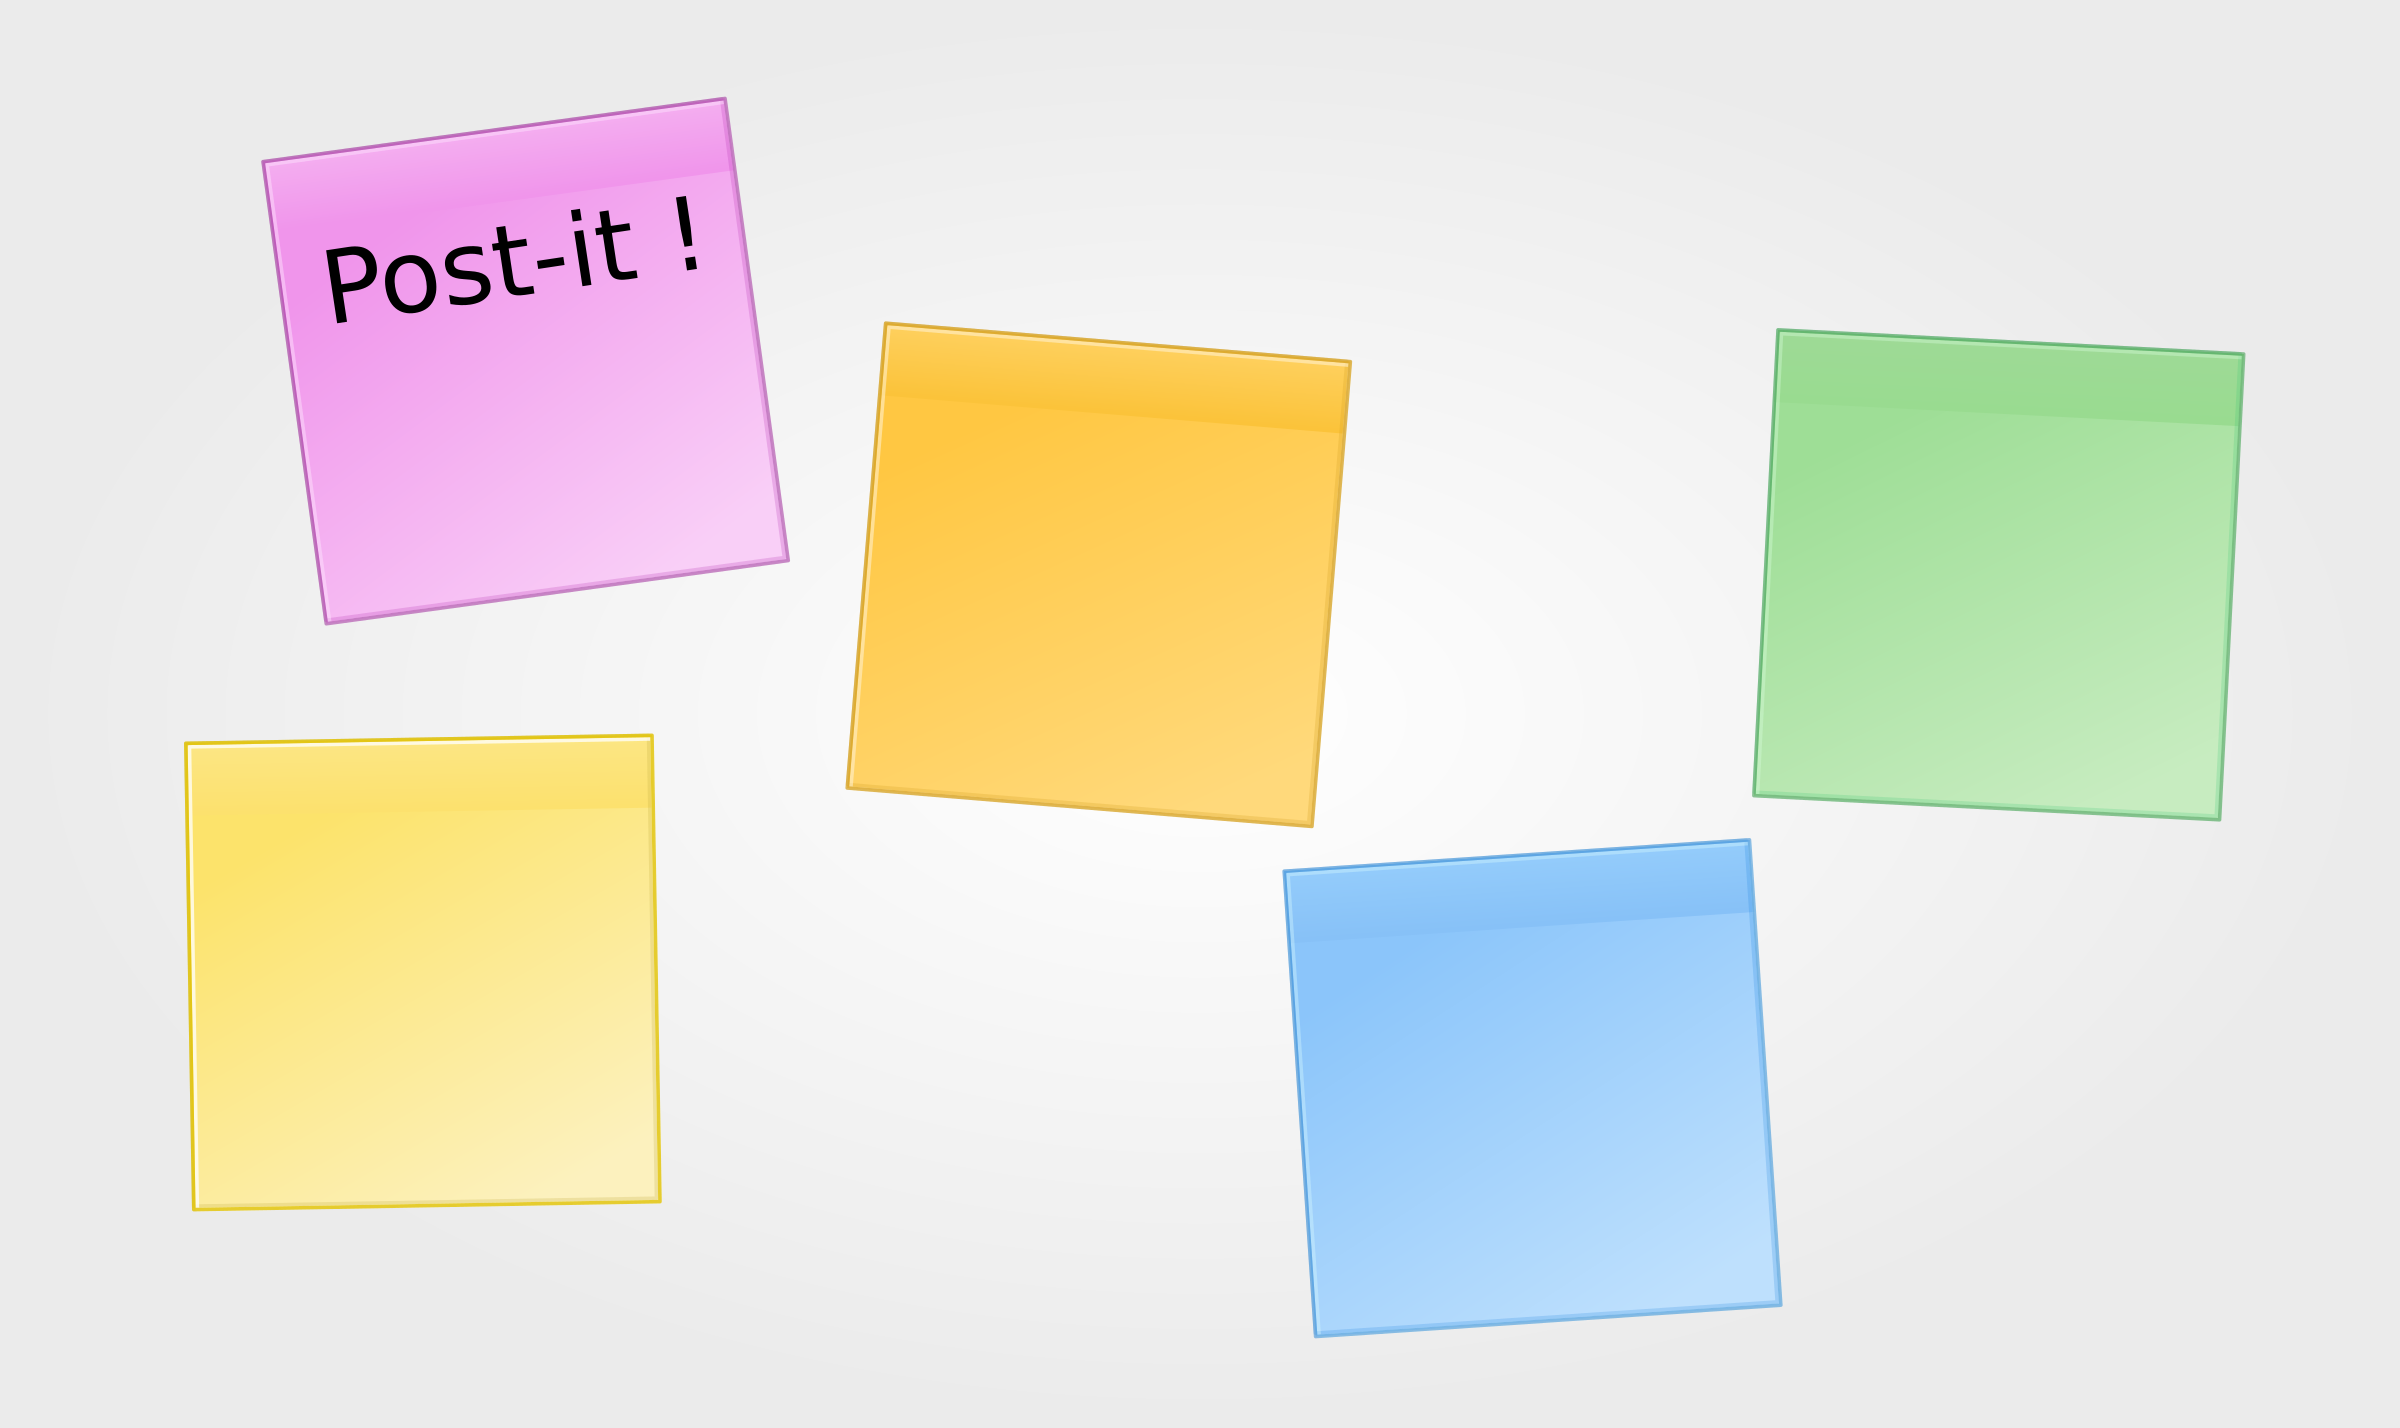 Clipart post it colors. Post-it notes png png royalty free download